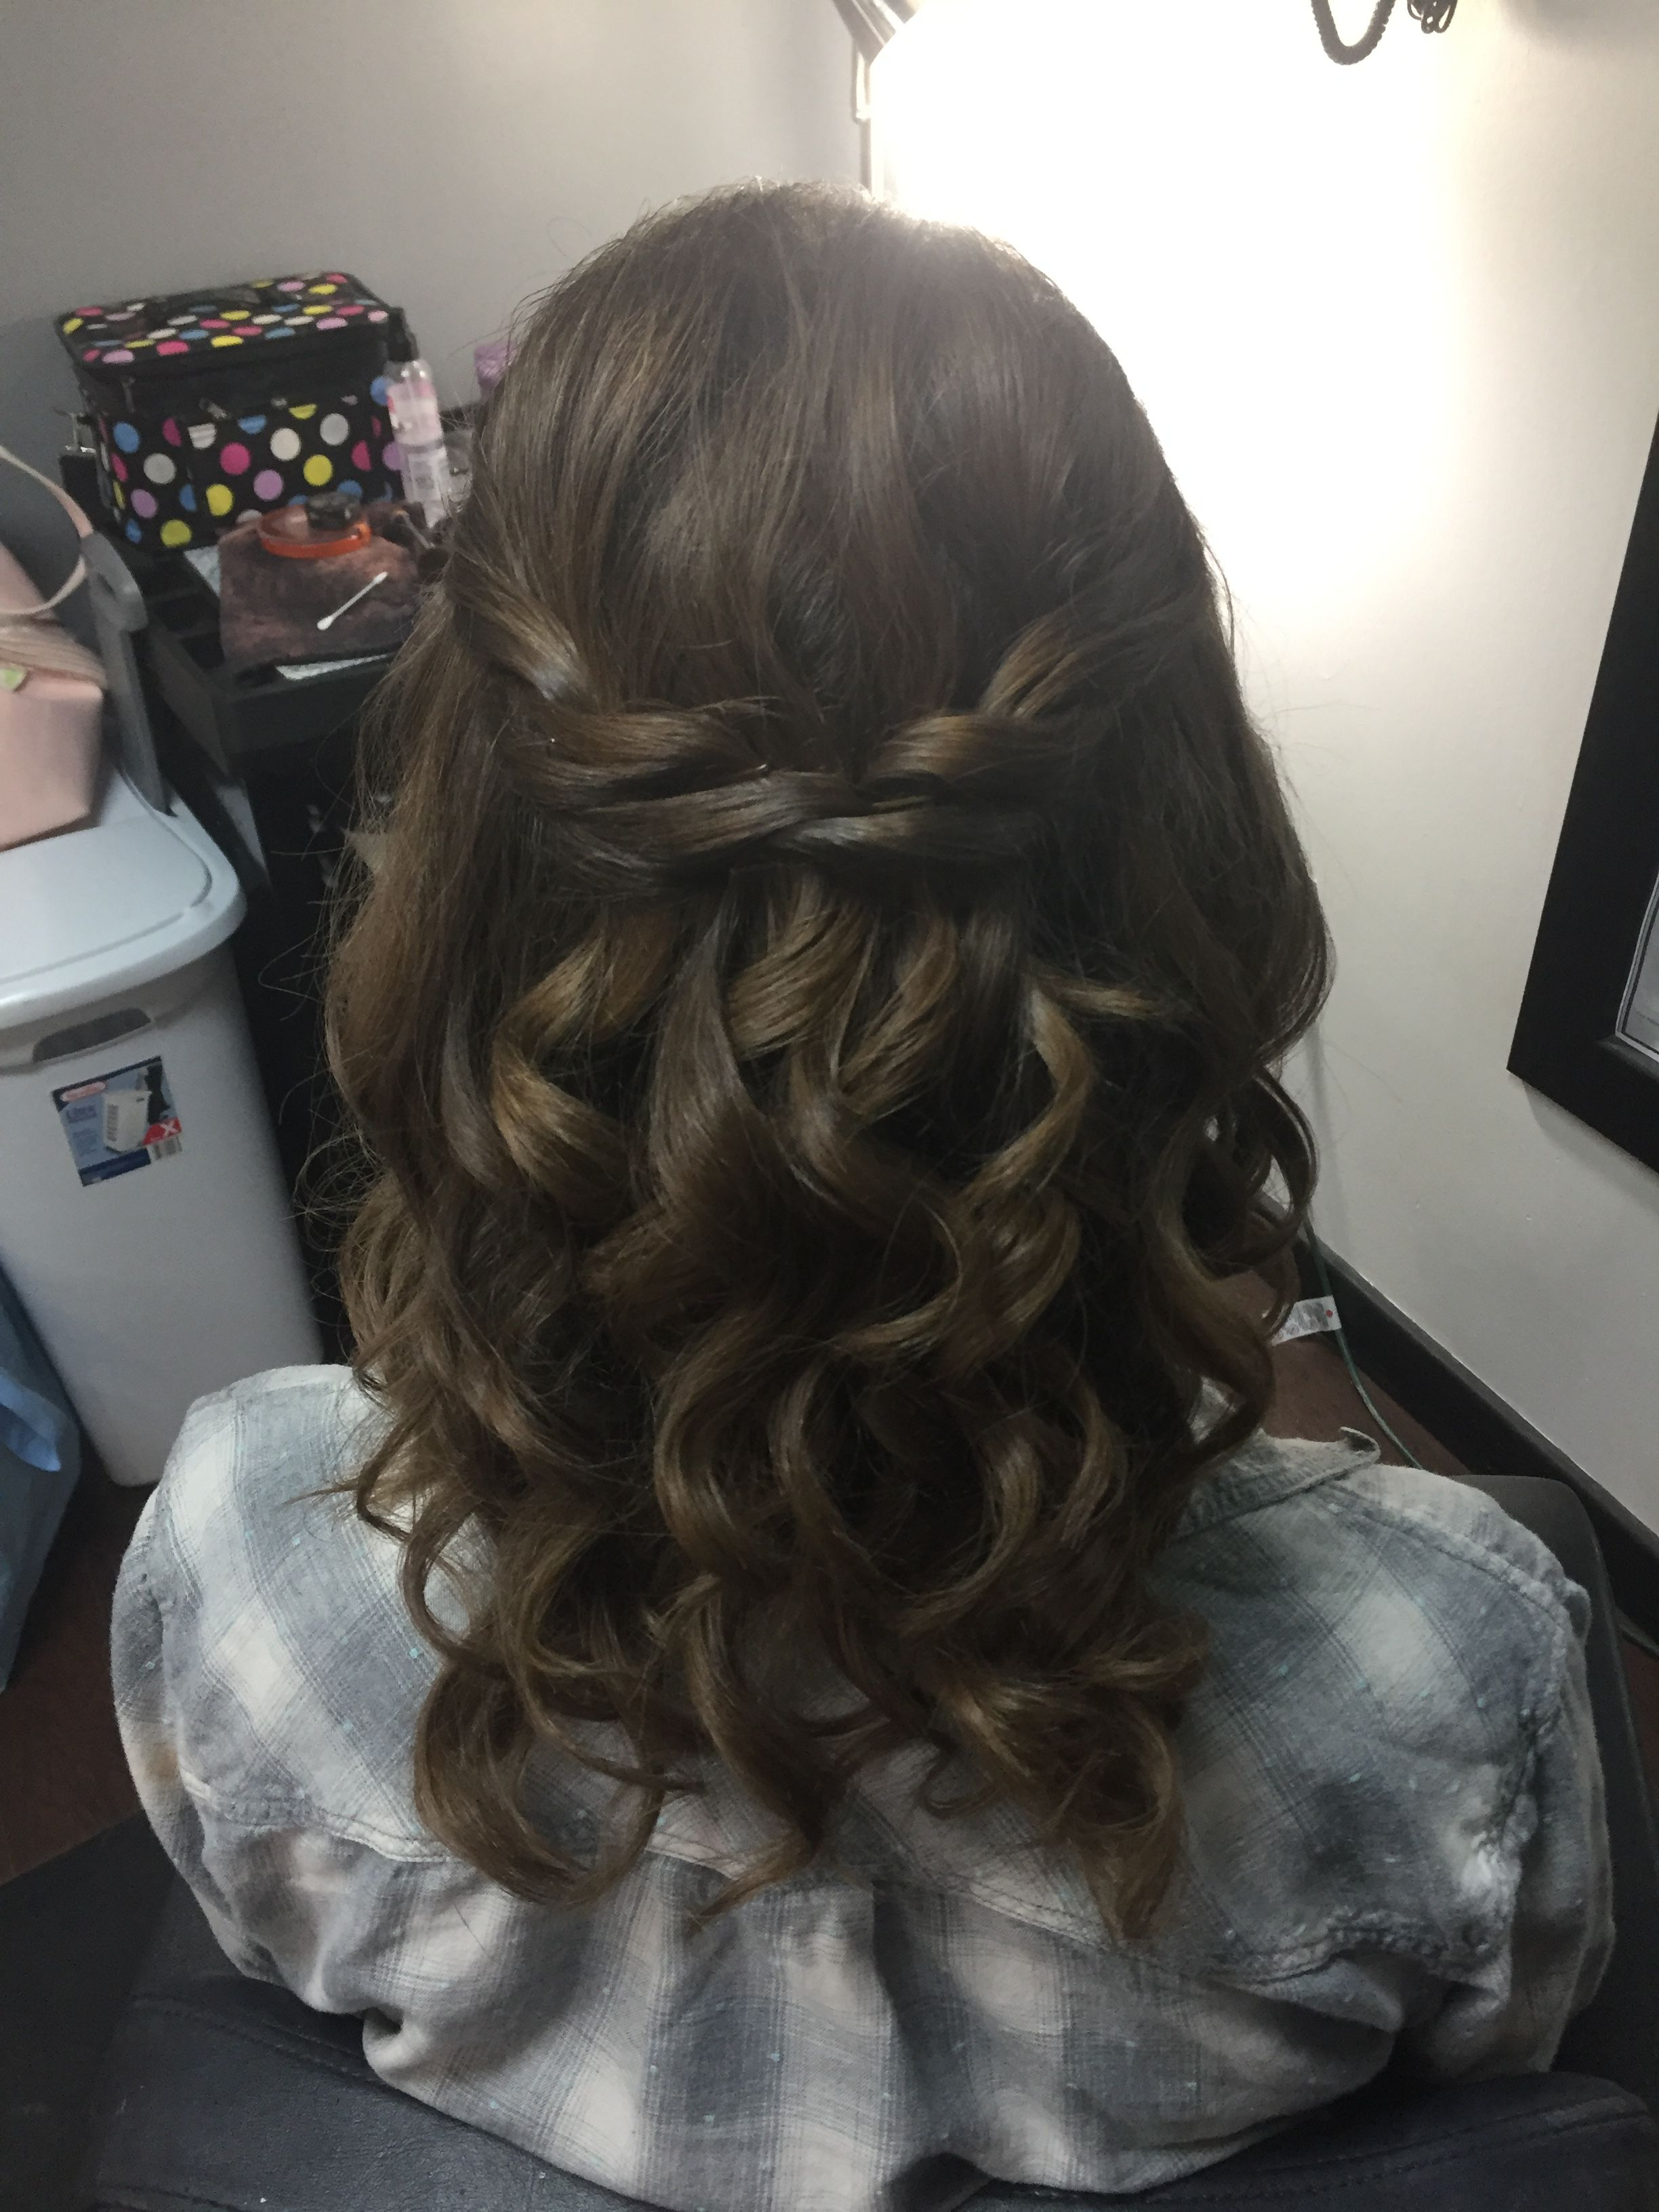 2019 year look- Hairstyles Homecoming half up curly with braid